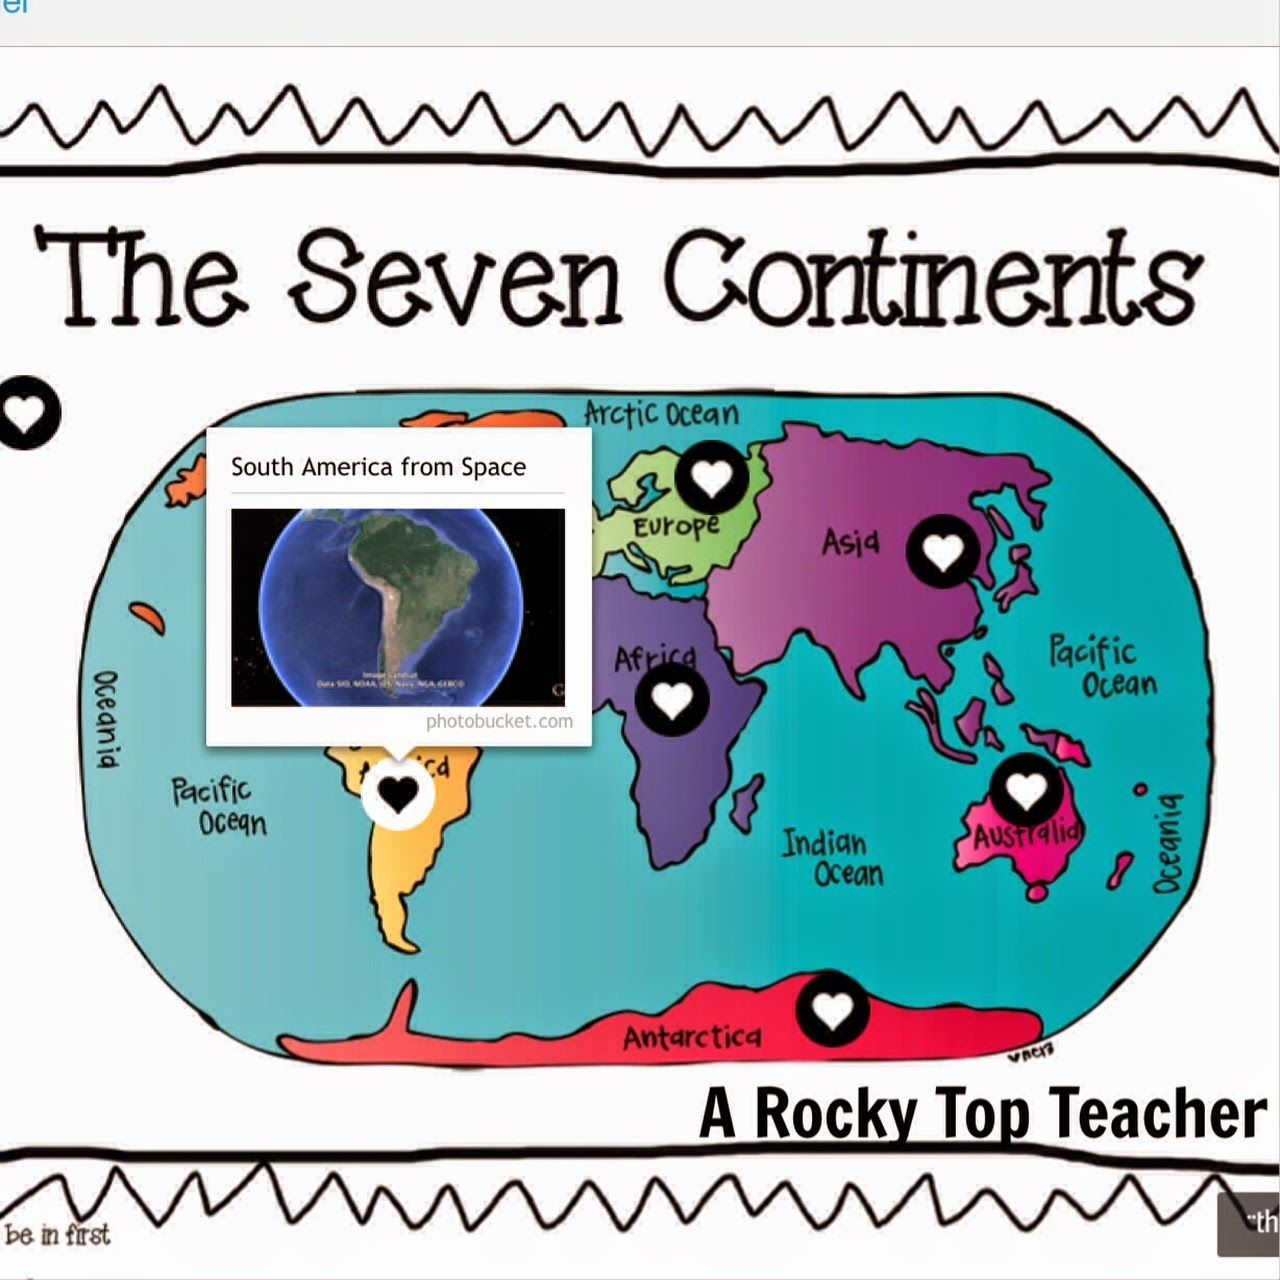 A Little Bit of Geography The Seven Continents interactive map